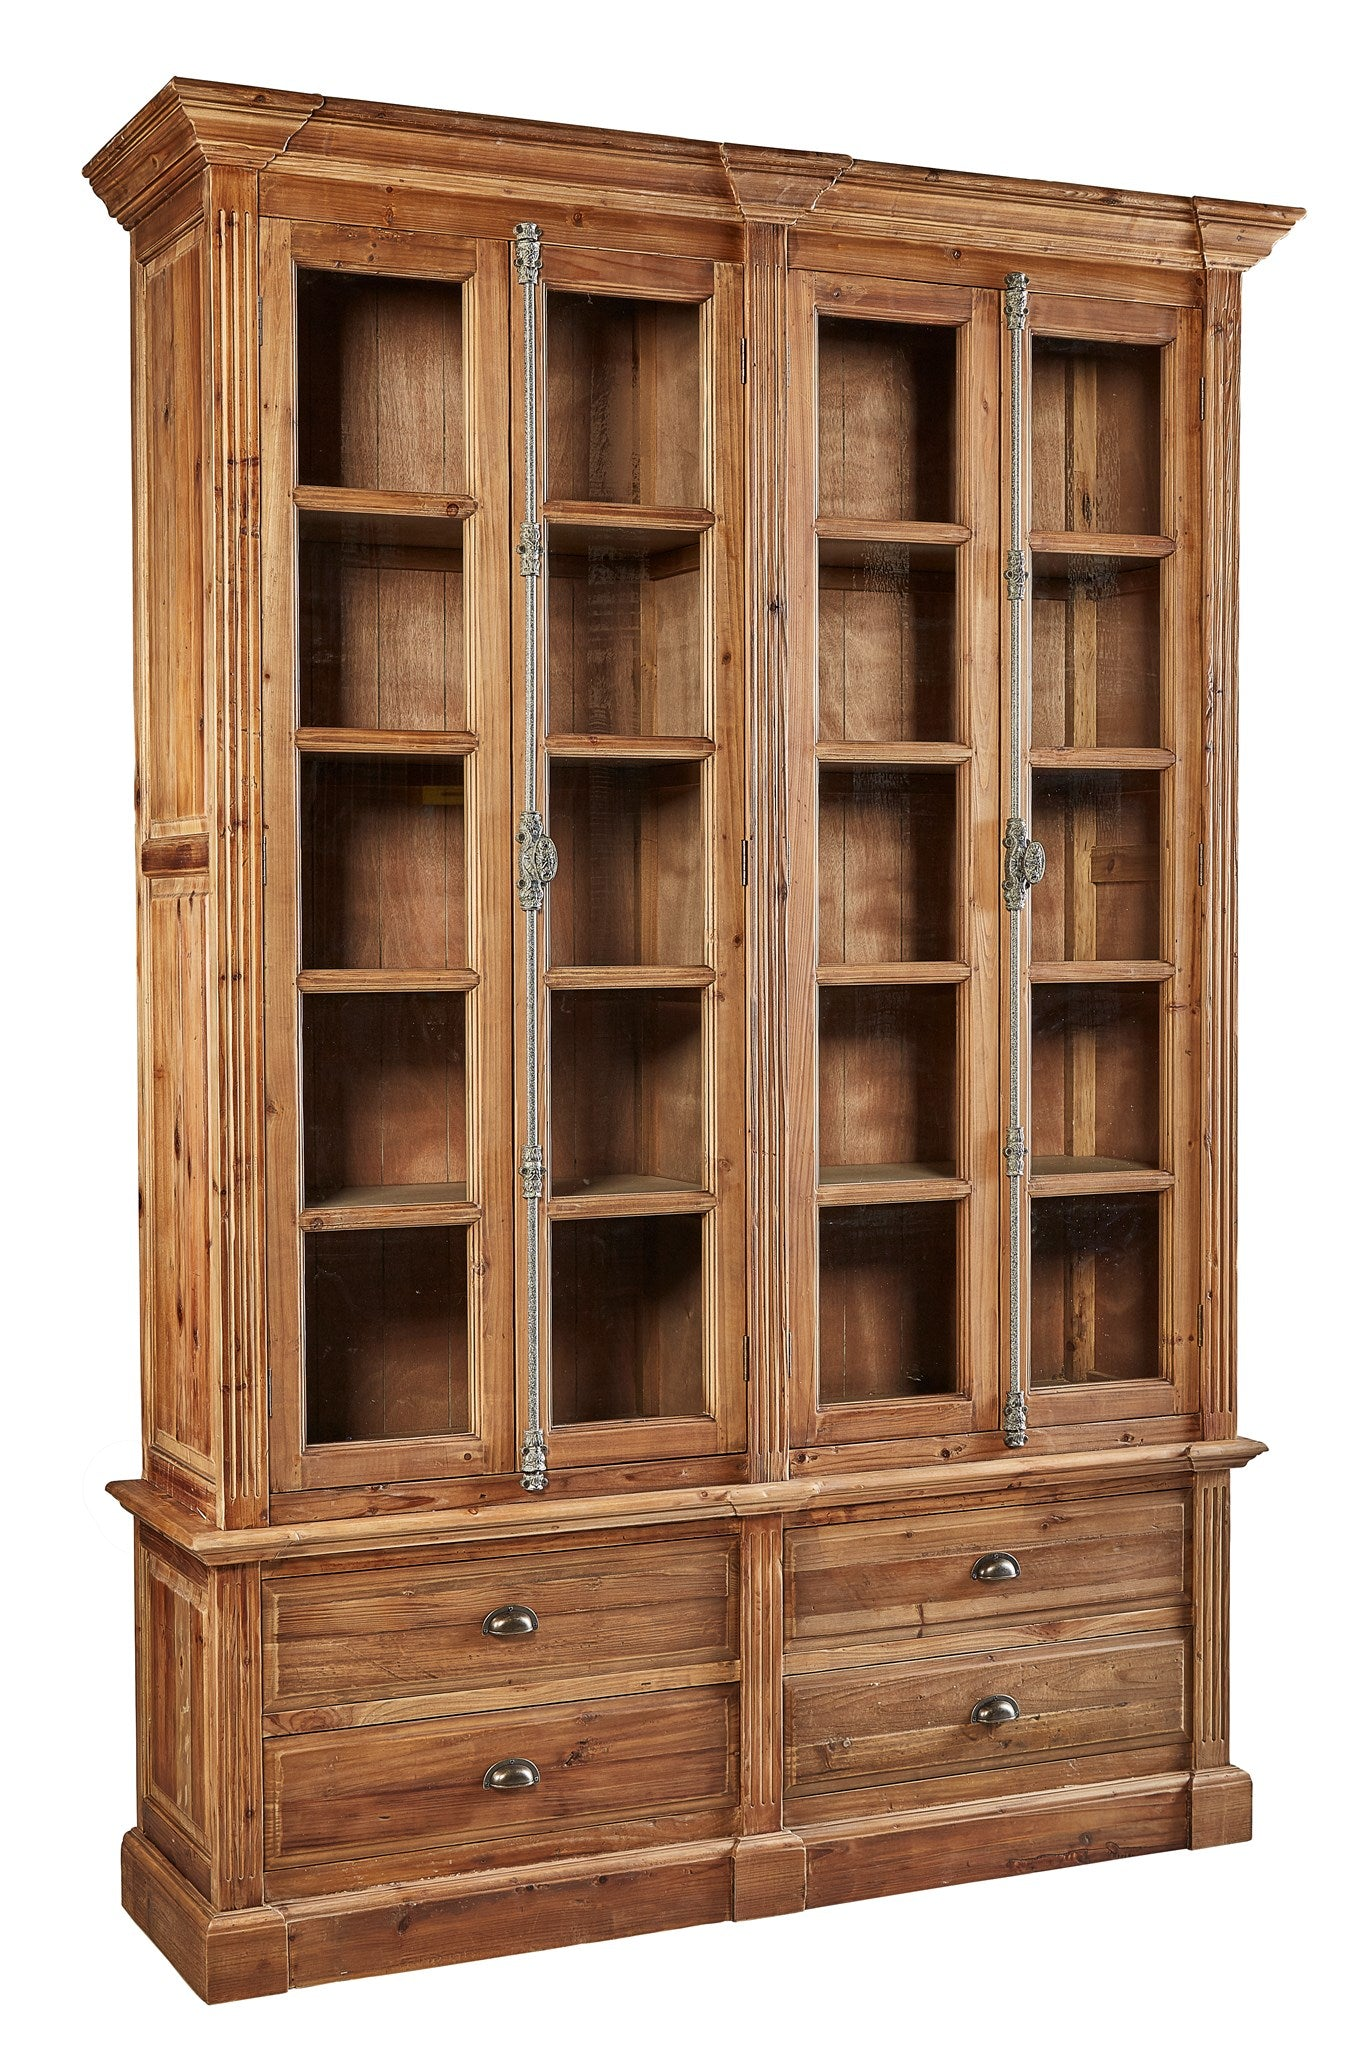 Furniture Classics Natural Old Fir Bookcase 84271 - Curios And More